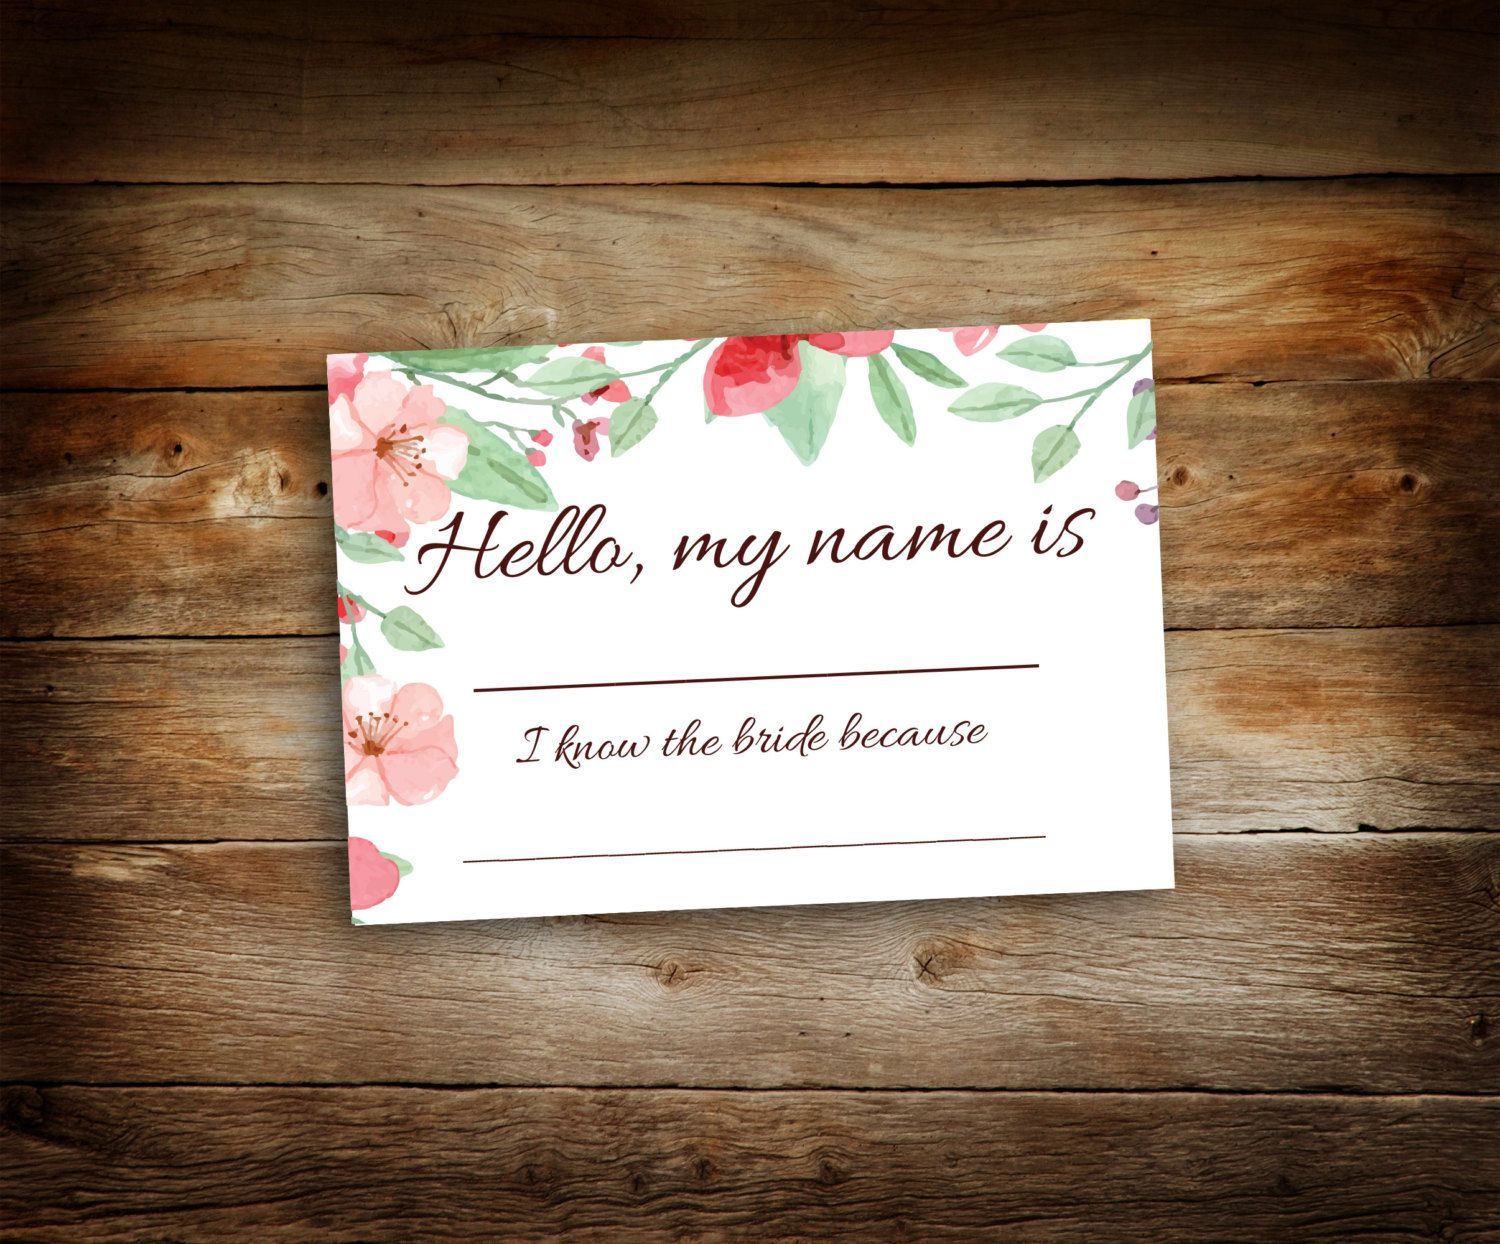 bridal shower name tags - guest name tags - i know the bride because - flower name tags